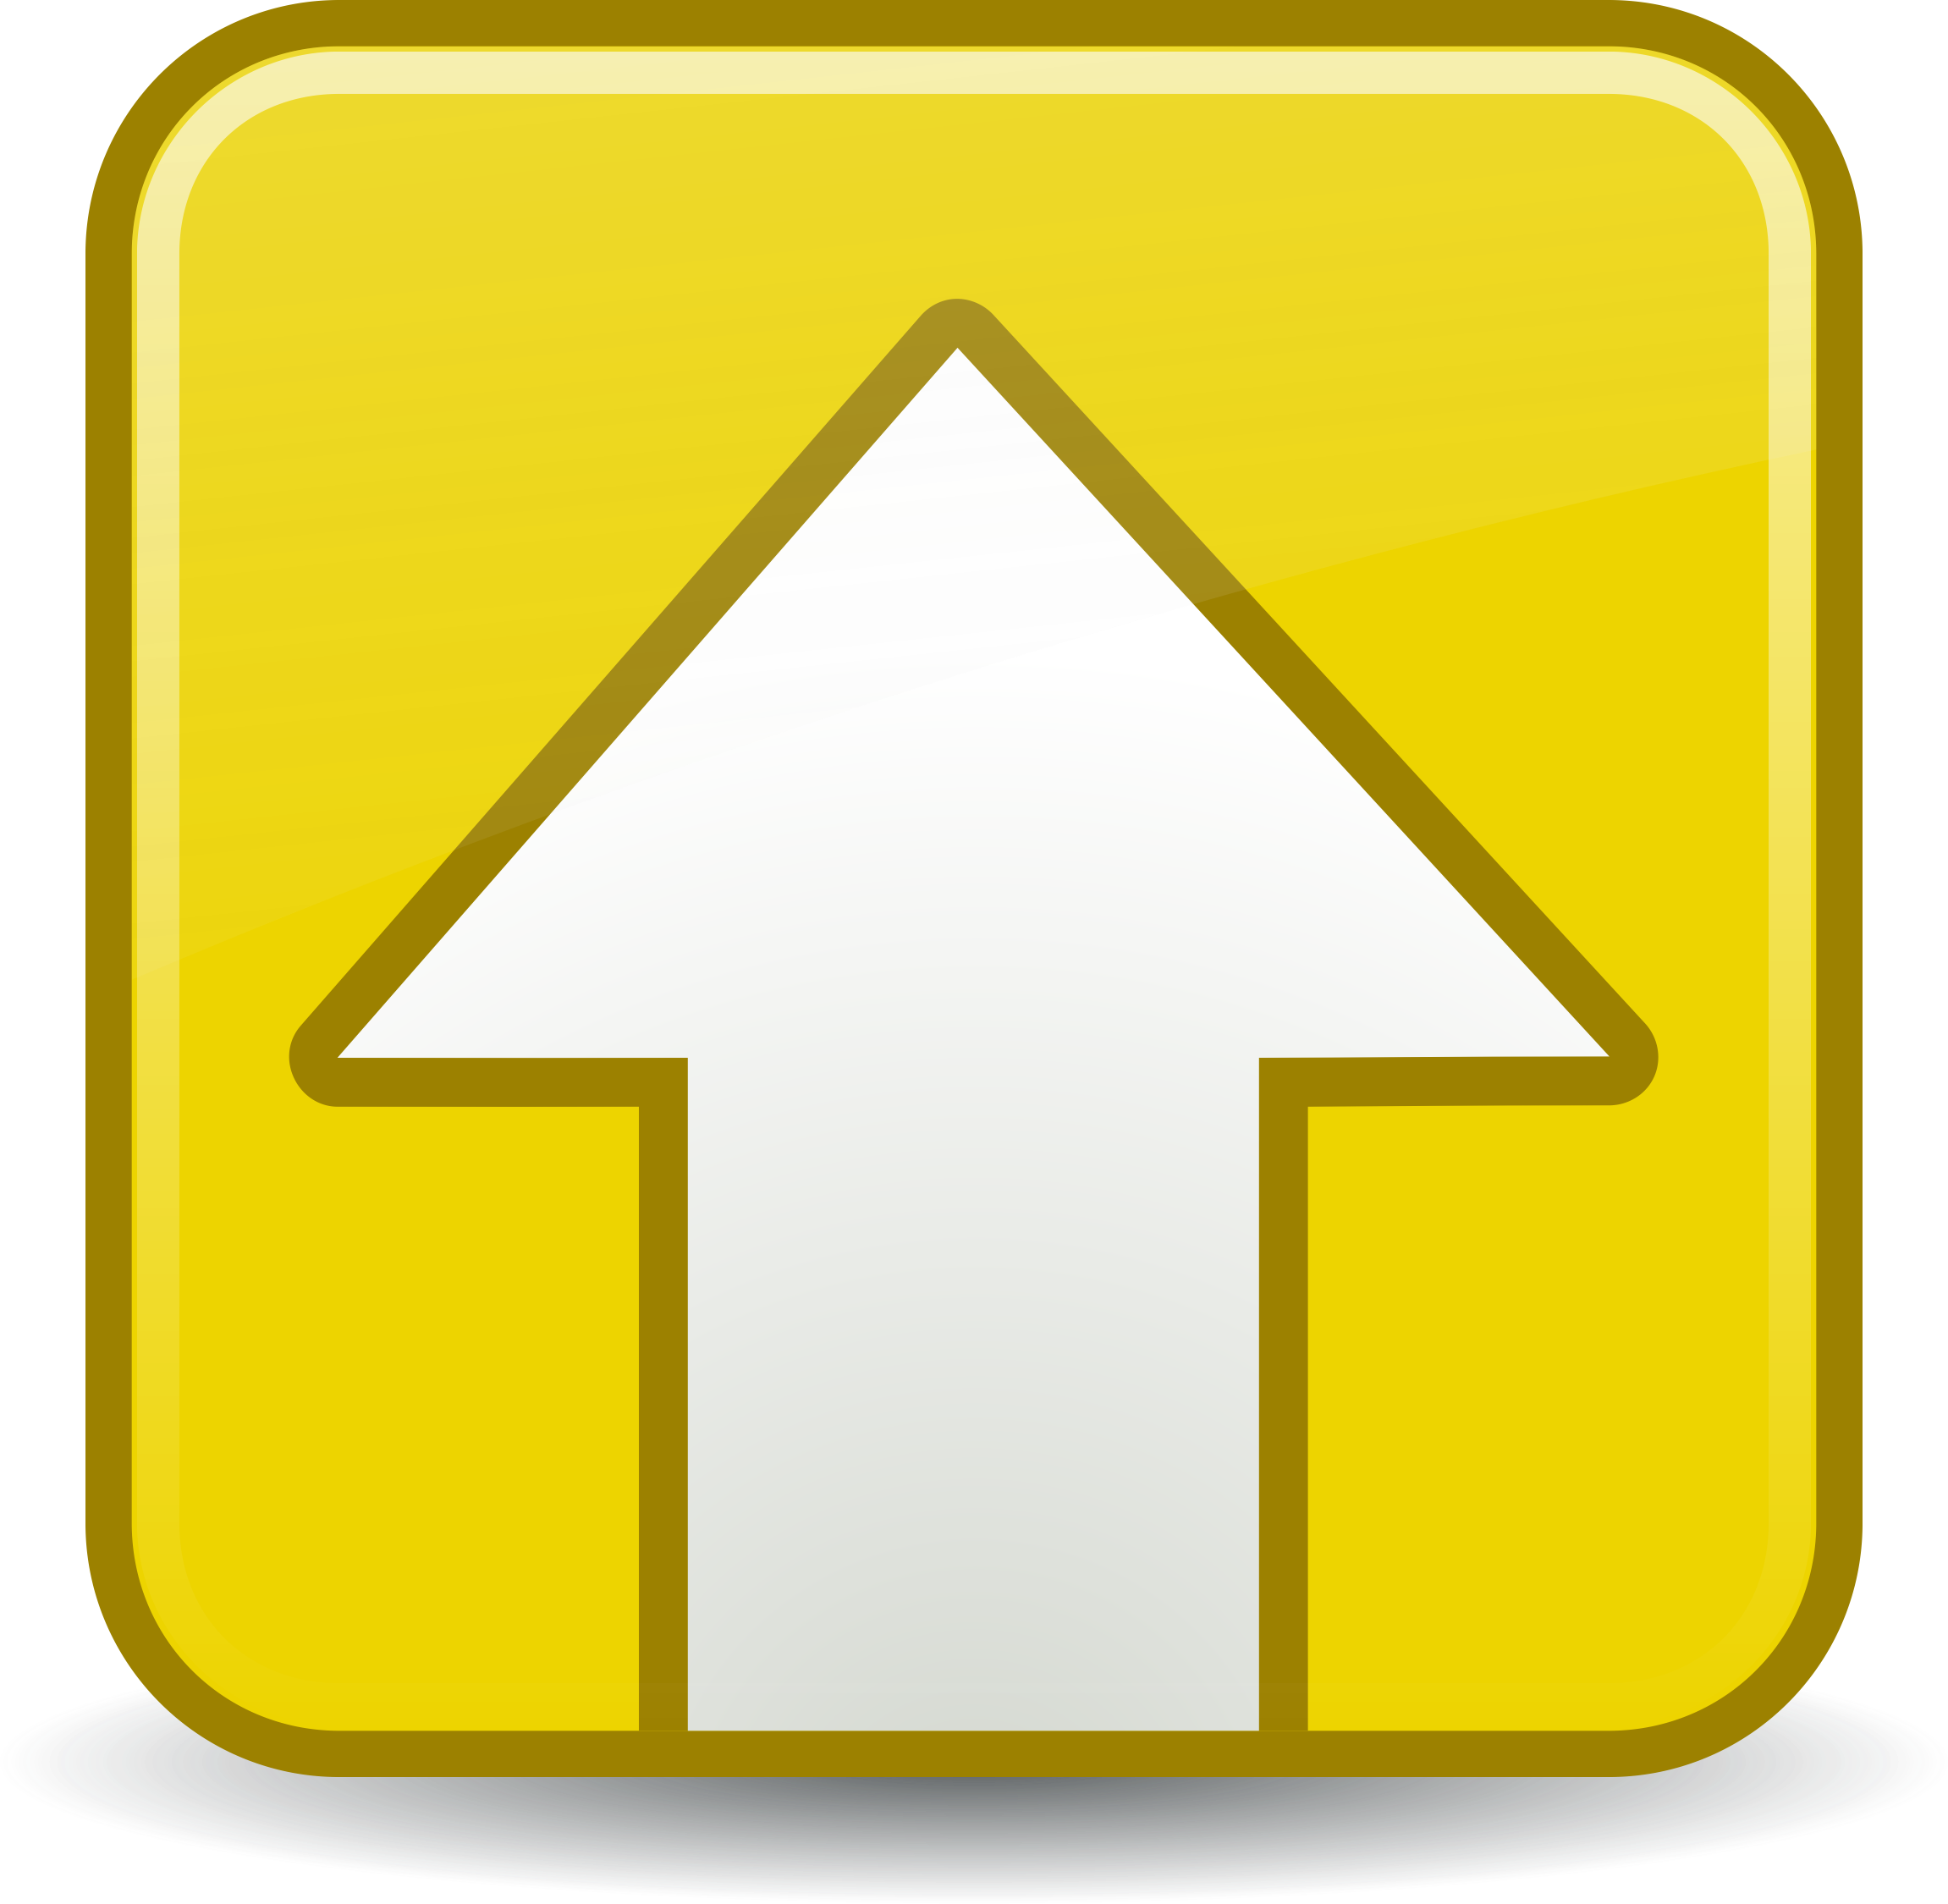 Upgrade Icon Png #118167.